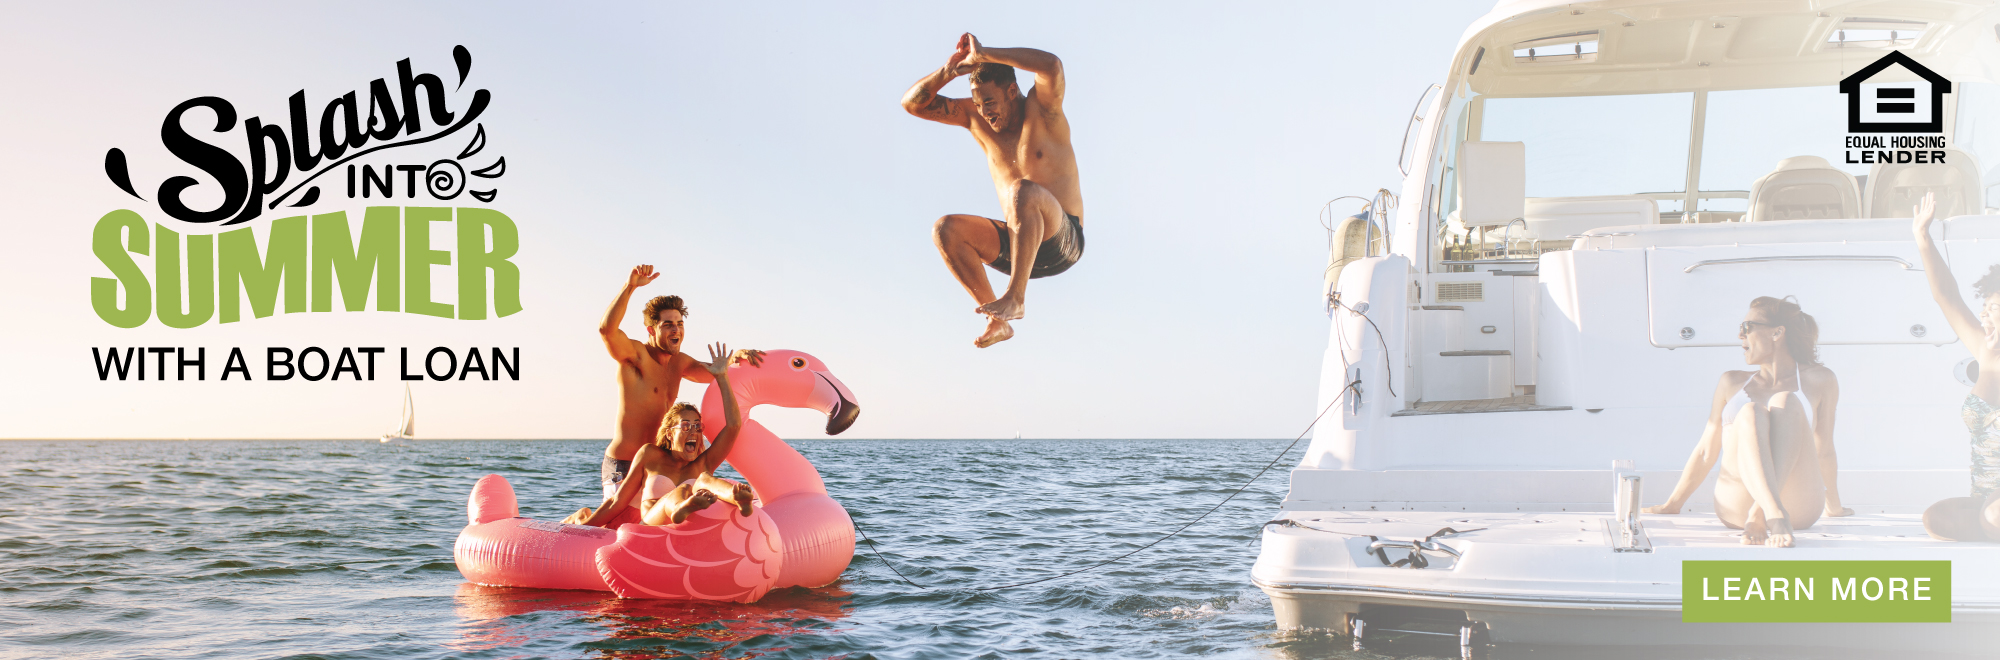 Splash into summer with a boat loan